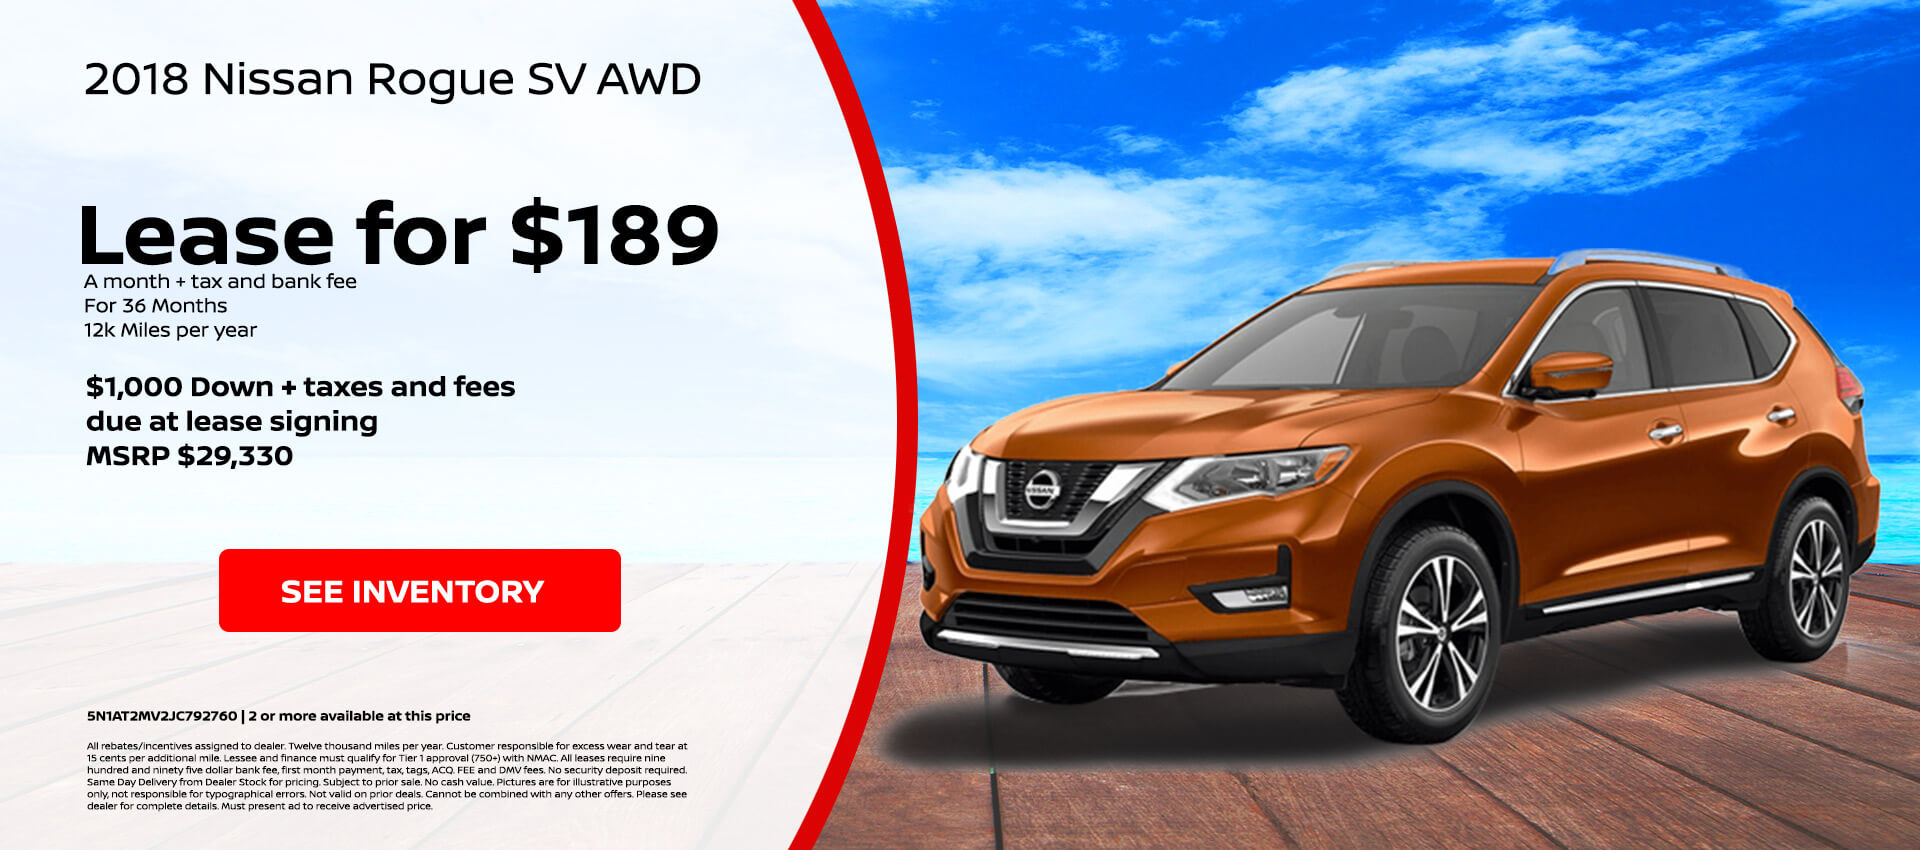 Nissan Rogue SV $189 Lease